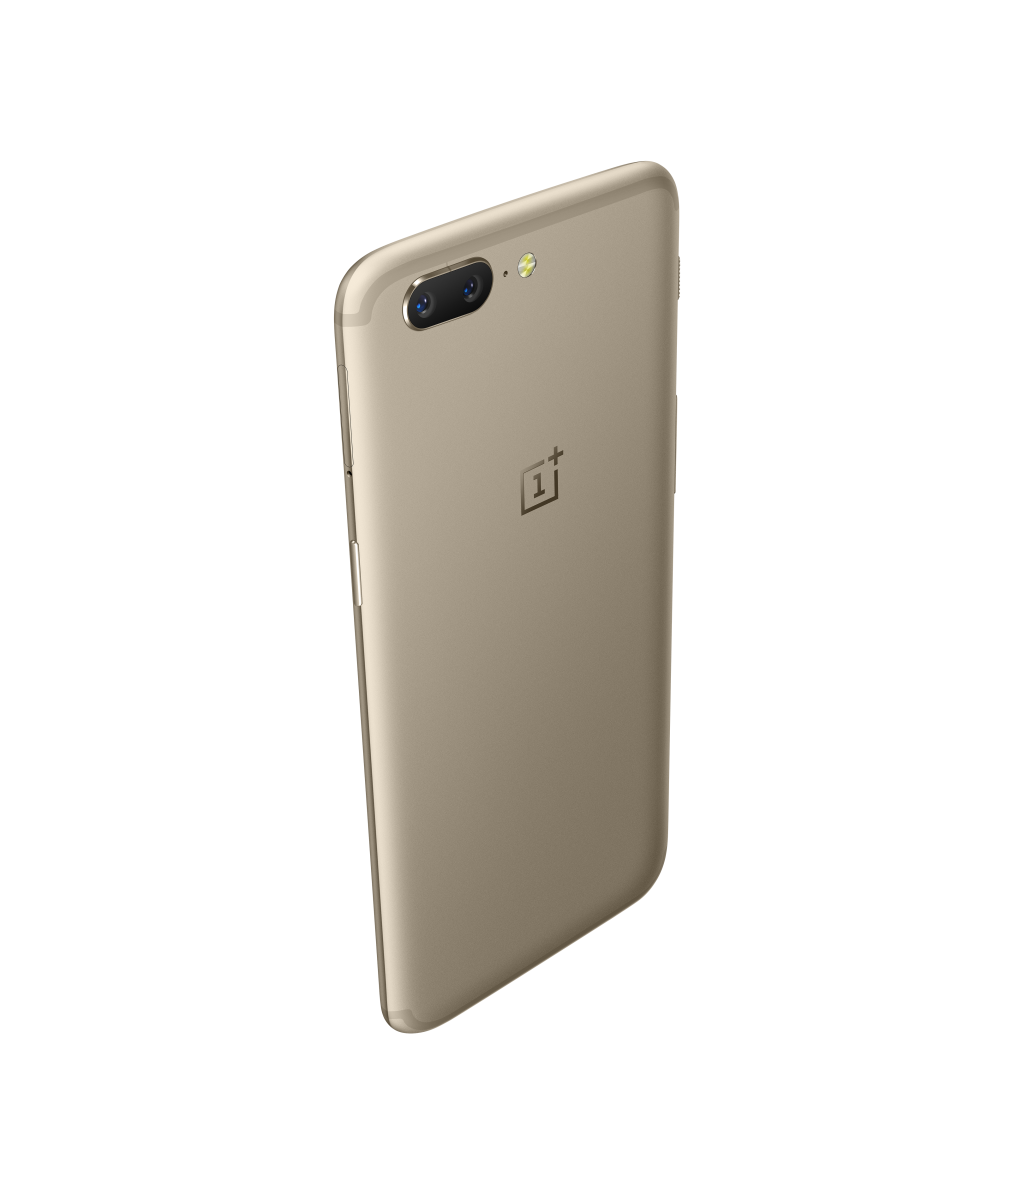 OnePlus now offers OnePlus 5 Soft Gold